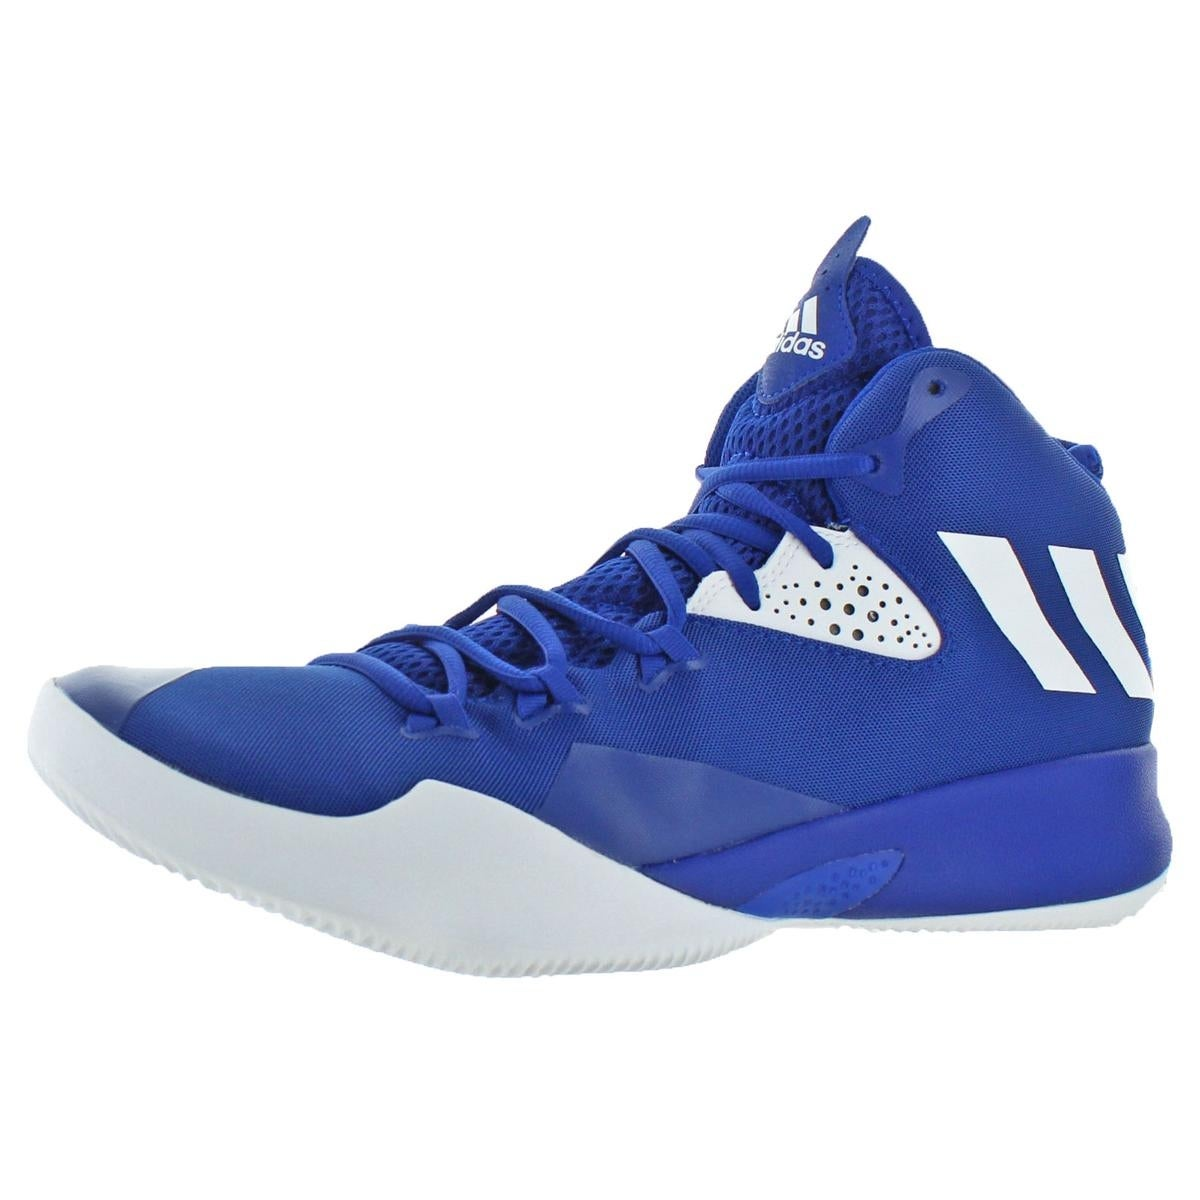 Shop Adidas Mens Dual Threat 2017 Basketball Shoes Trainer Performance -  10.5 medium (d) - Free Shipping Today - Overstock.com - 25460879 7a9253360